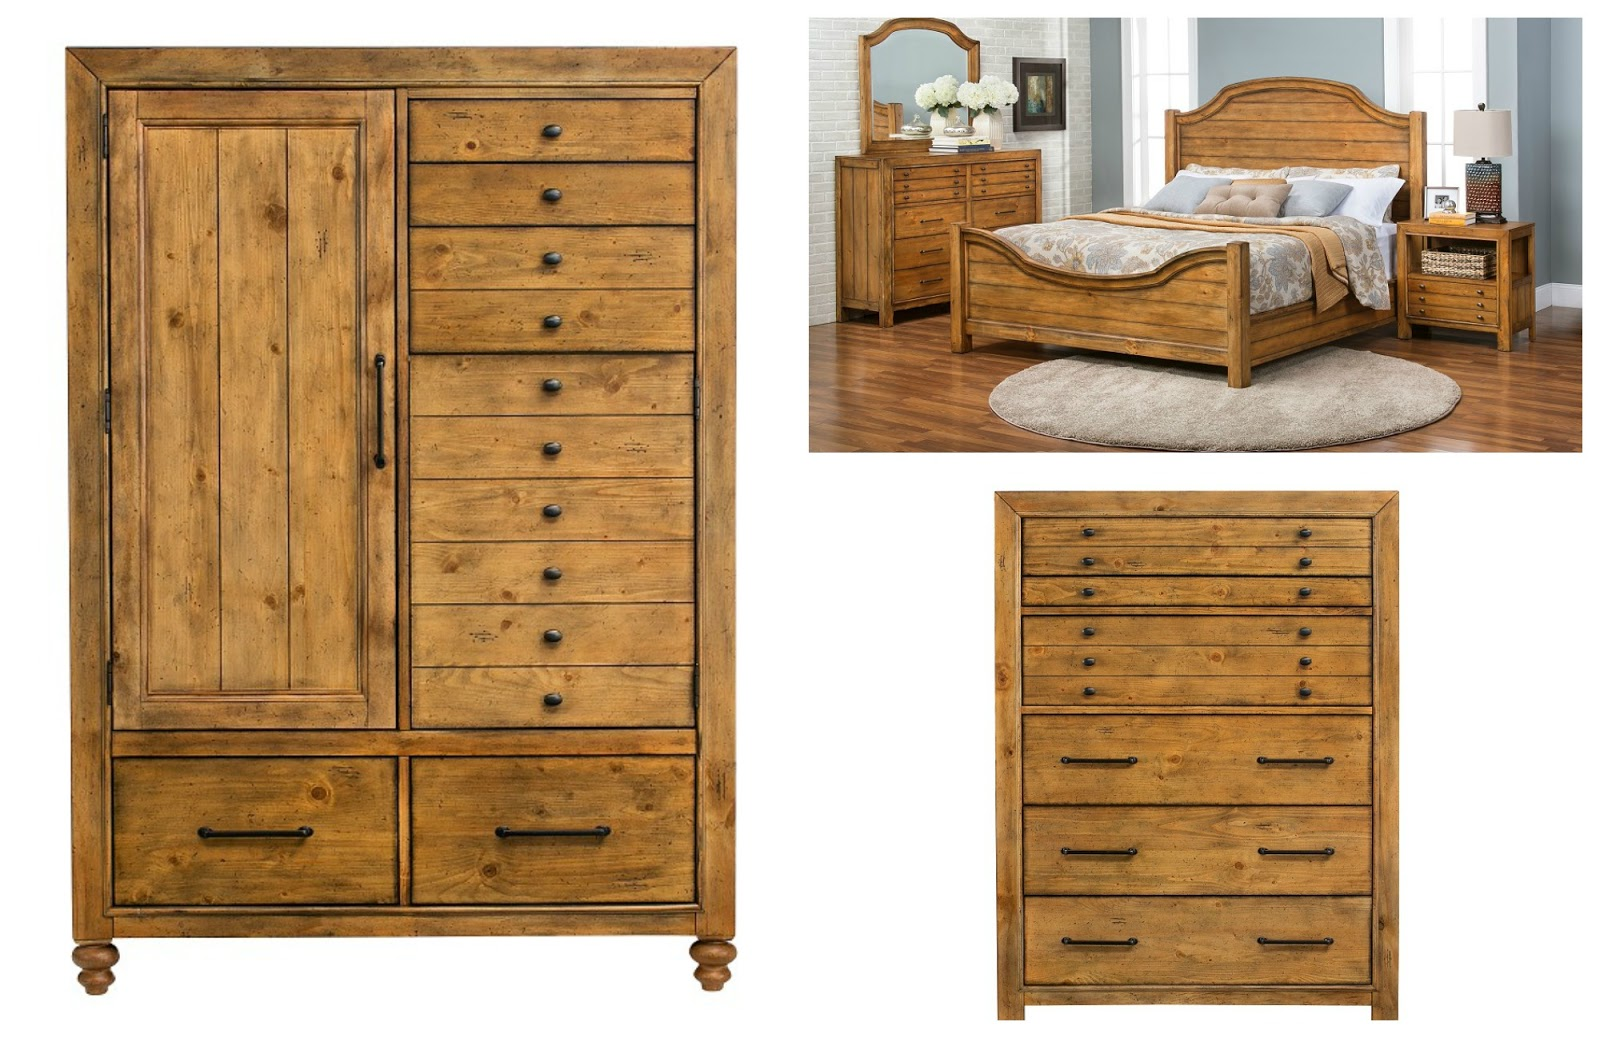 Slumberland Furniture Store Osage Beach Mo Our Quality